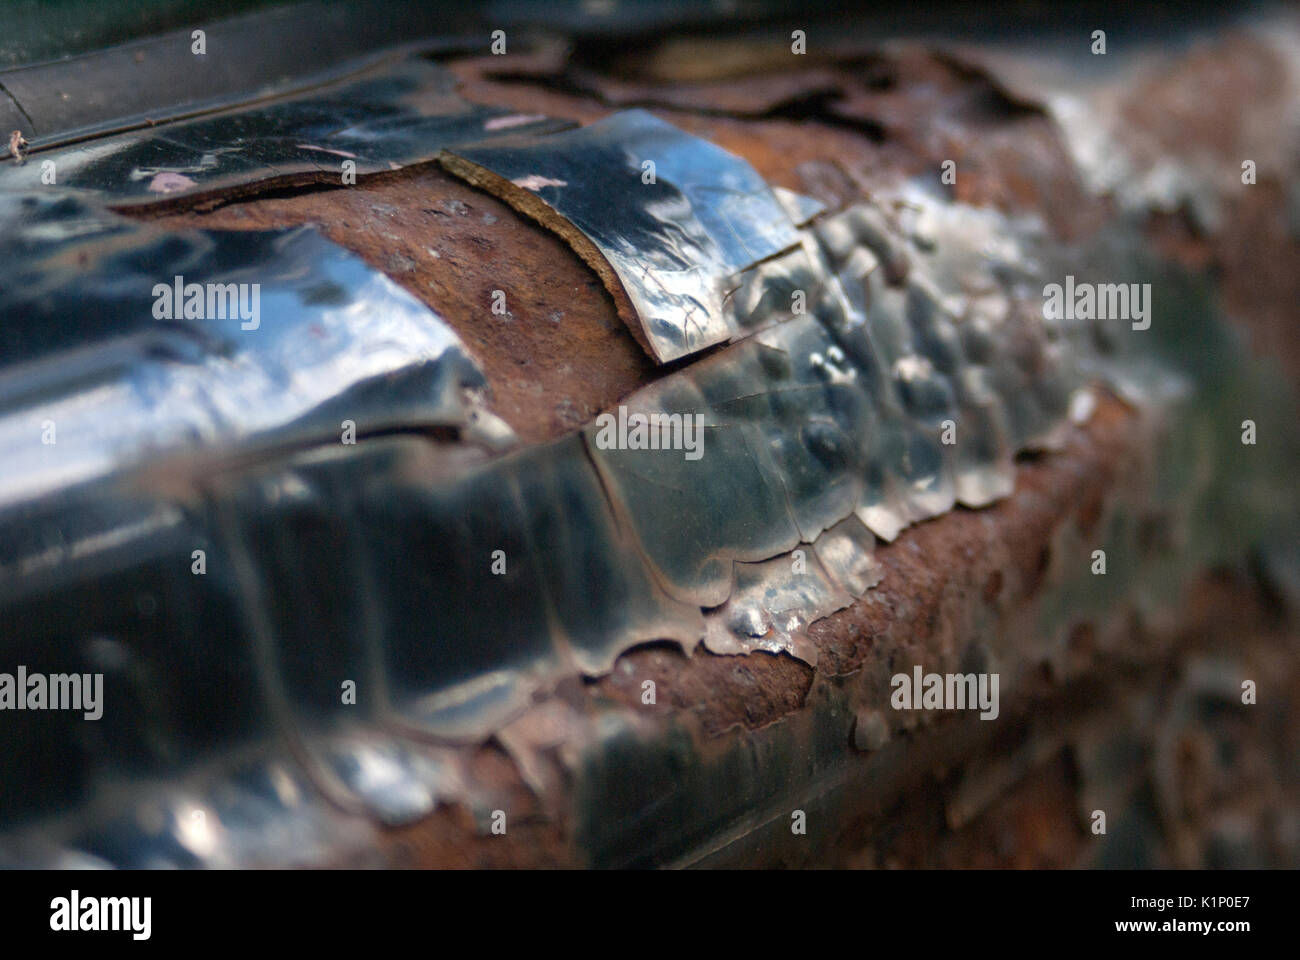 Rust peeling the paint off of a truck - Stock Image